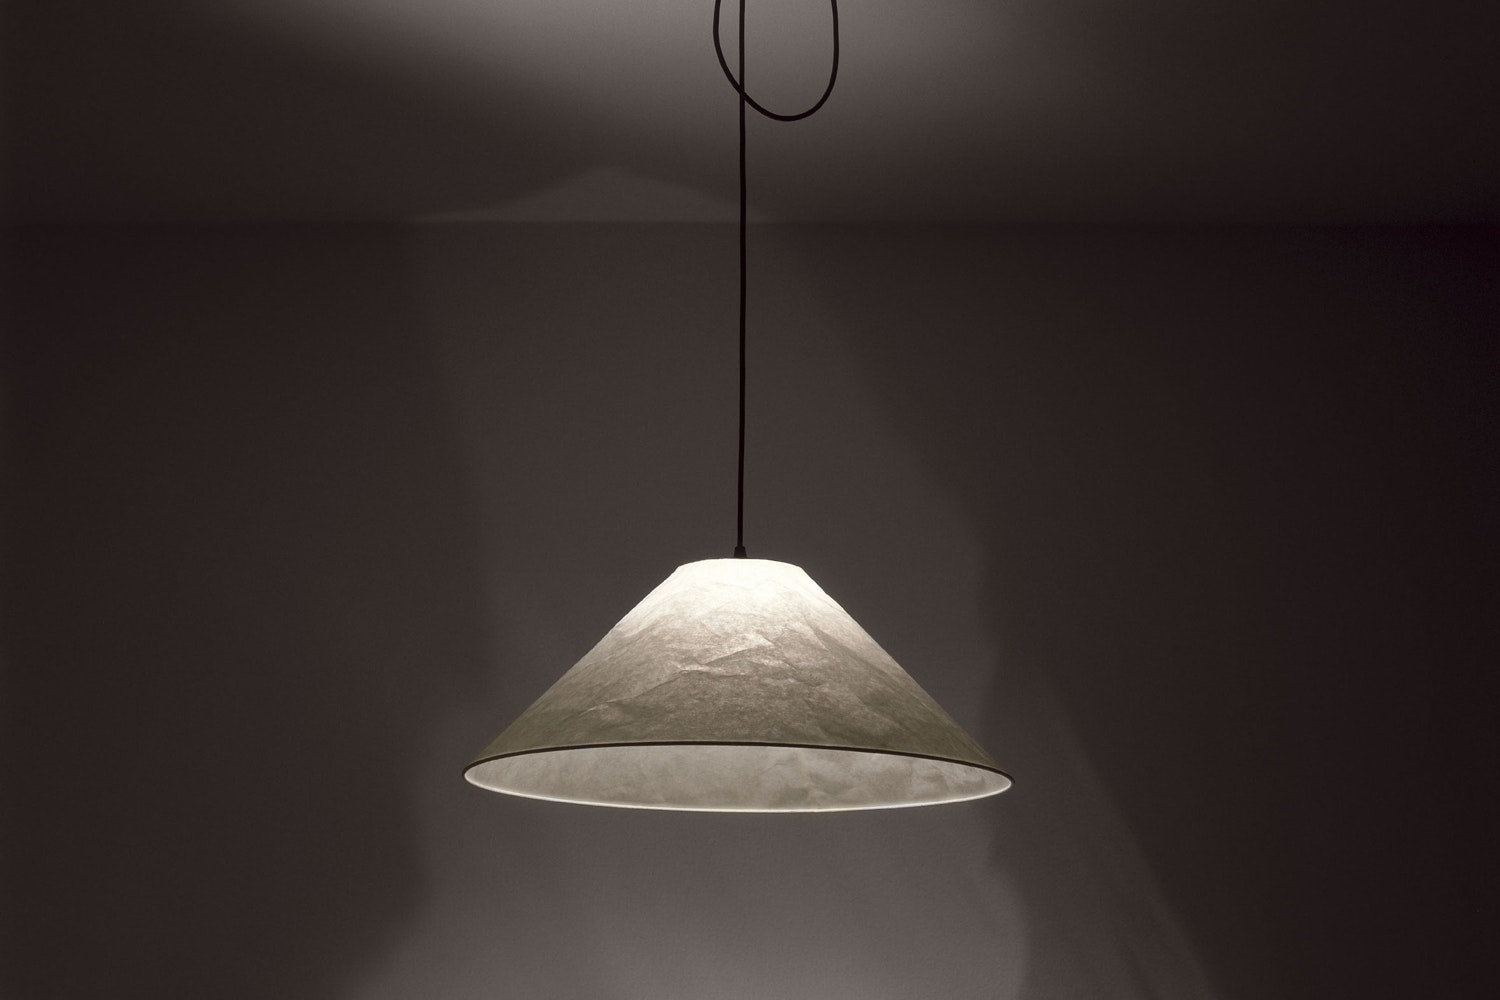 Knitterling Suspension Lamp by Ingo Maurer for Ingo Maurer